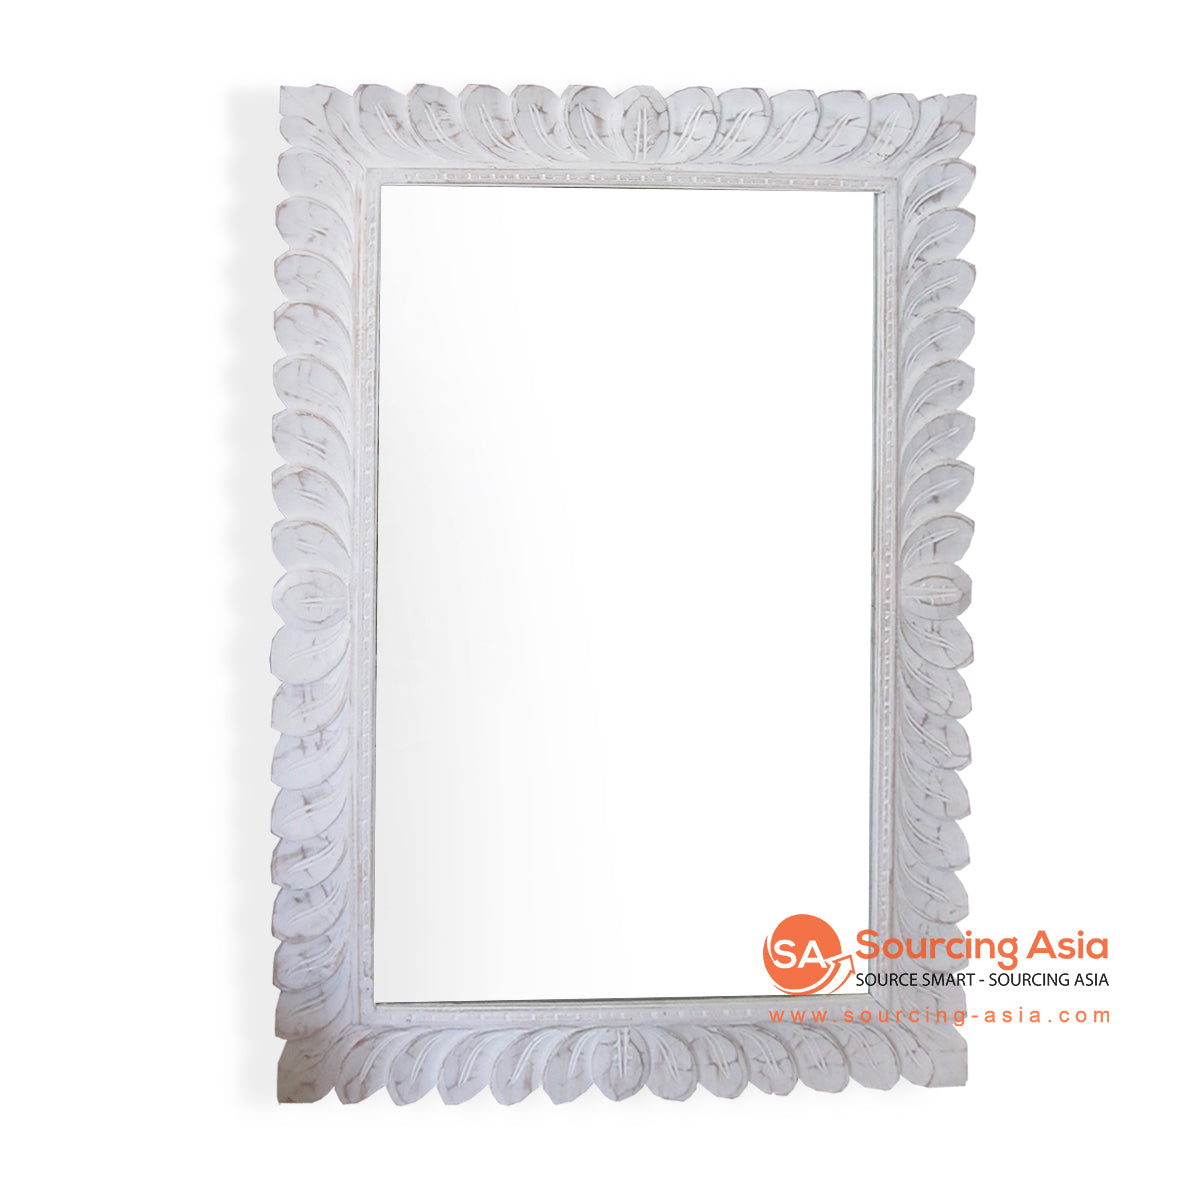 SSU019-70WW WOODEN MIRROR WITH CARVING